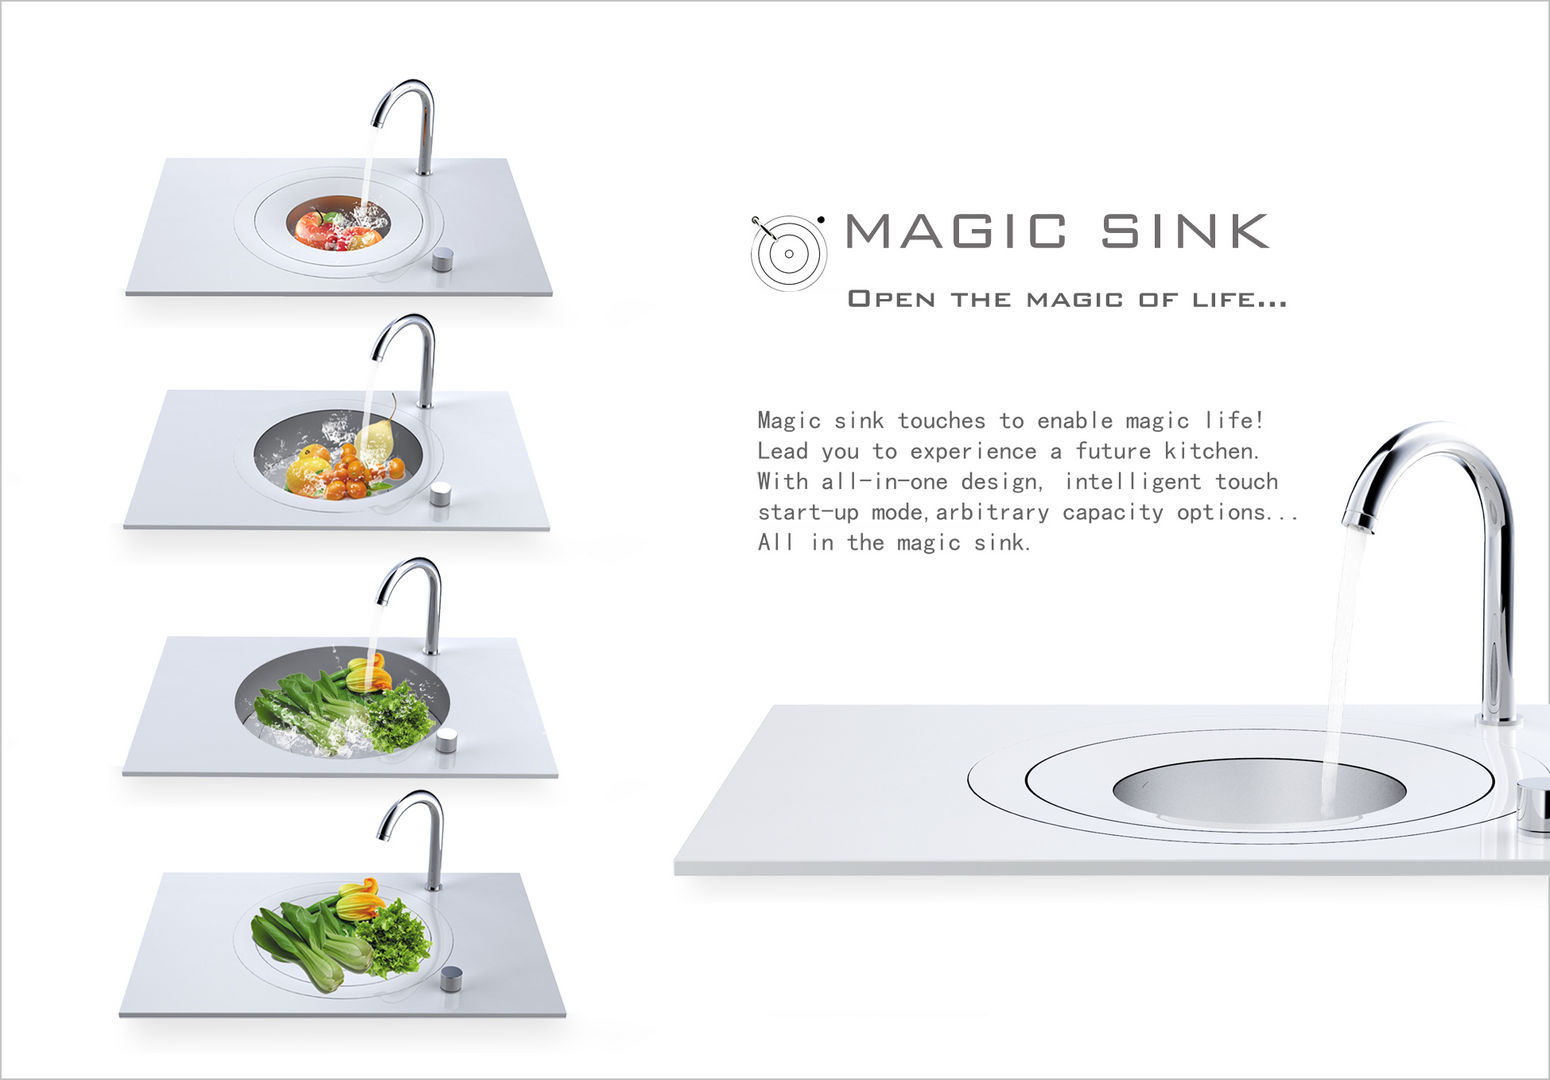 Magic Sink - Entry - iF WORLD DESIGN GUIDE